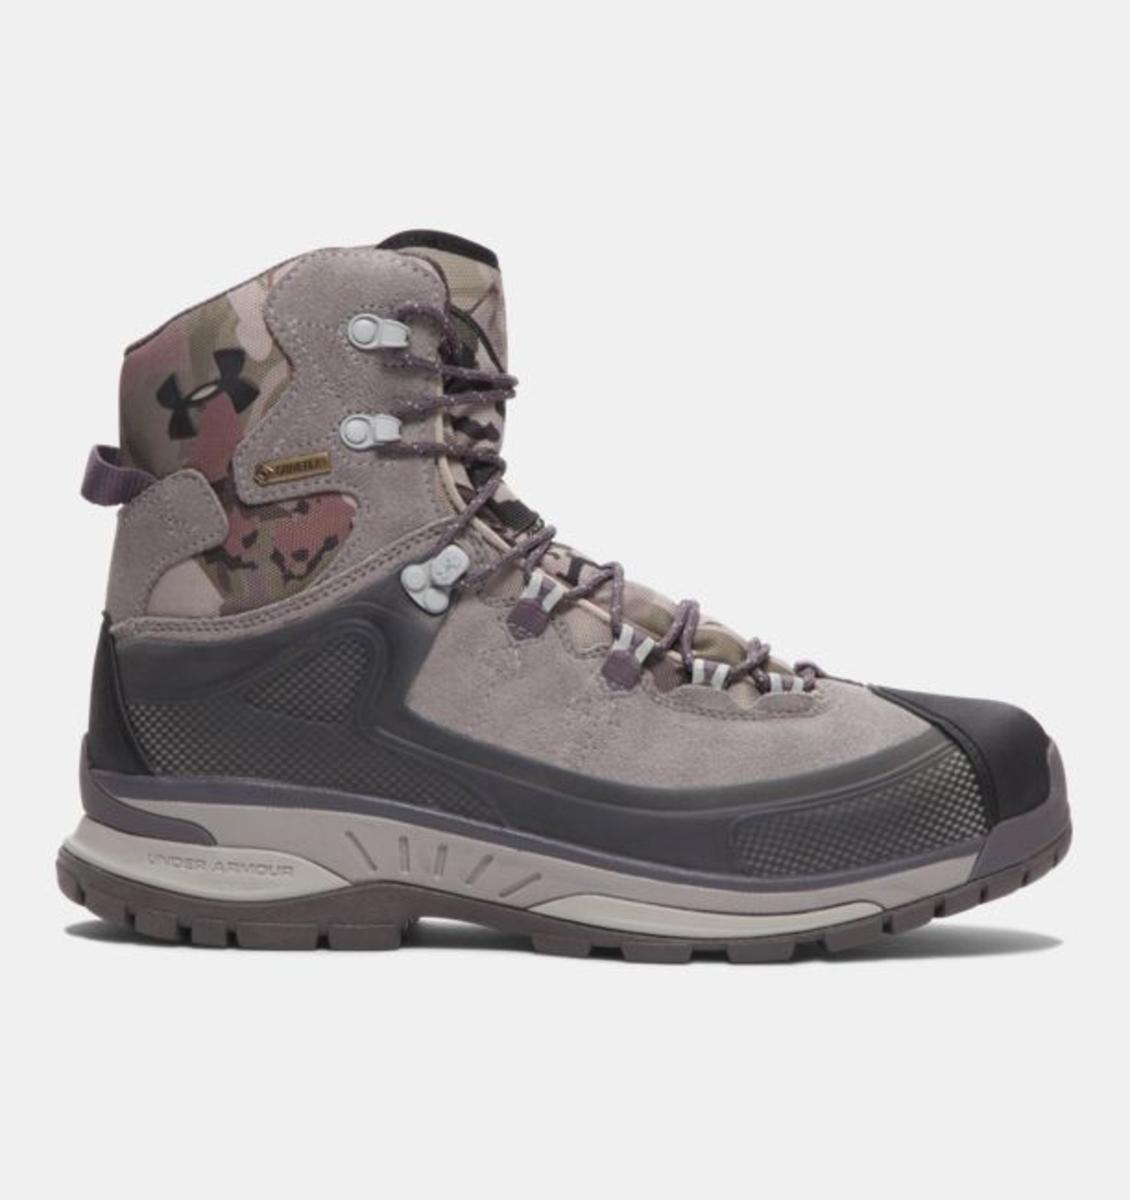 213430bb39d67 Under Armour Men's UA Ridge Reaper Elevation Hunting Boots - The ...